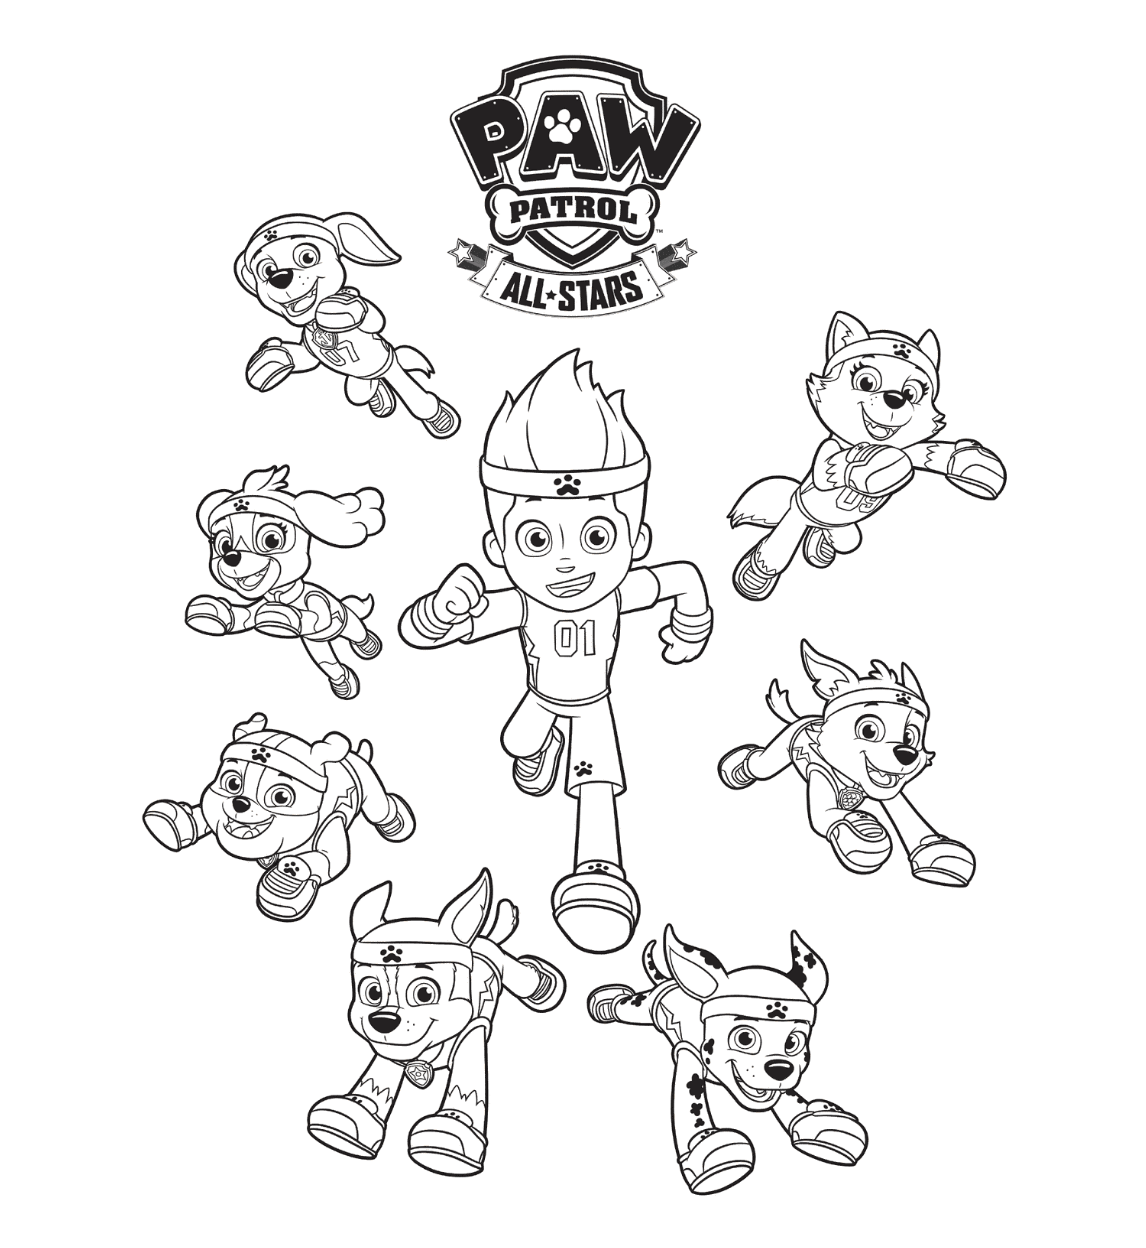 PAW Patrol AllStars Coloring Page Coloring pages